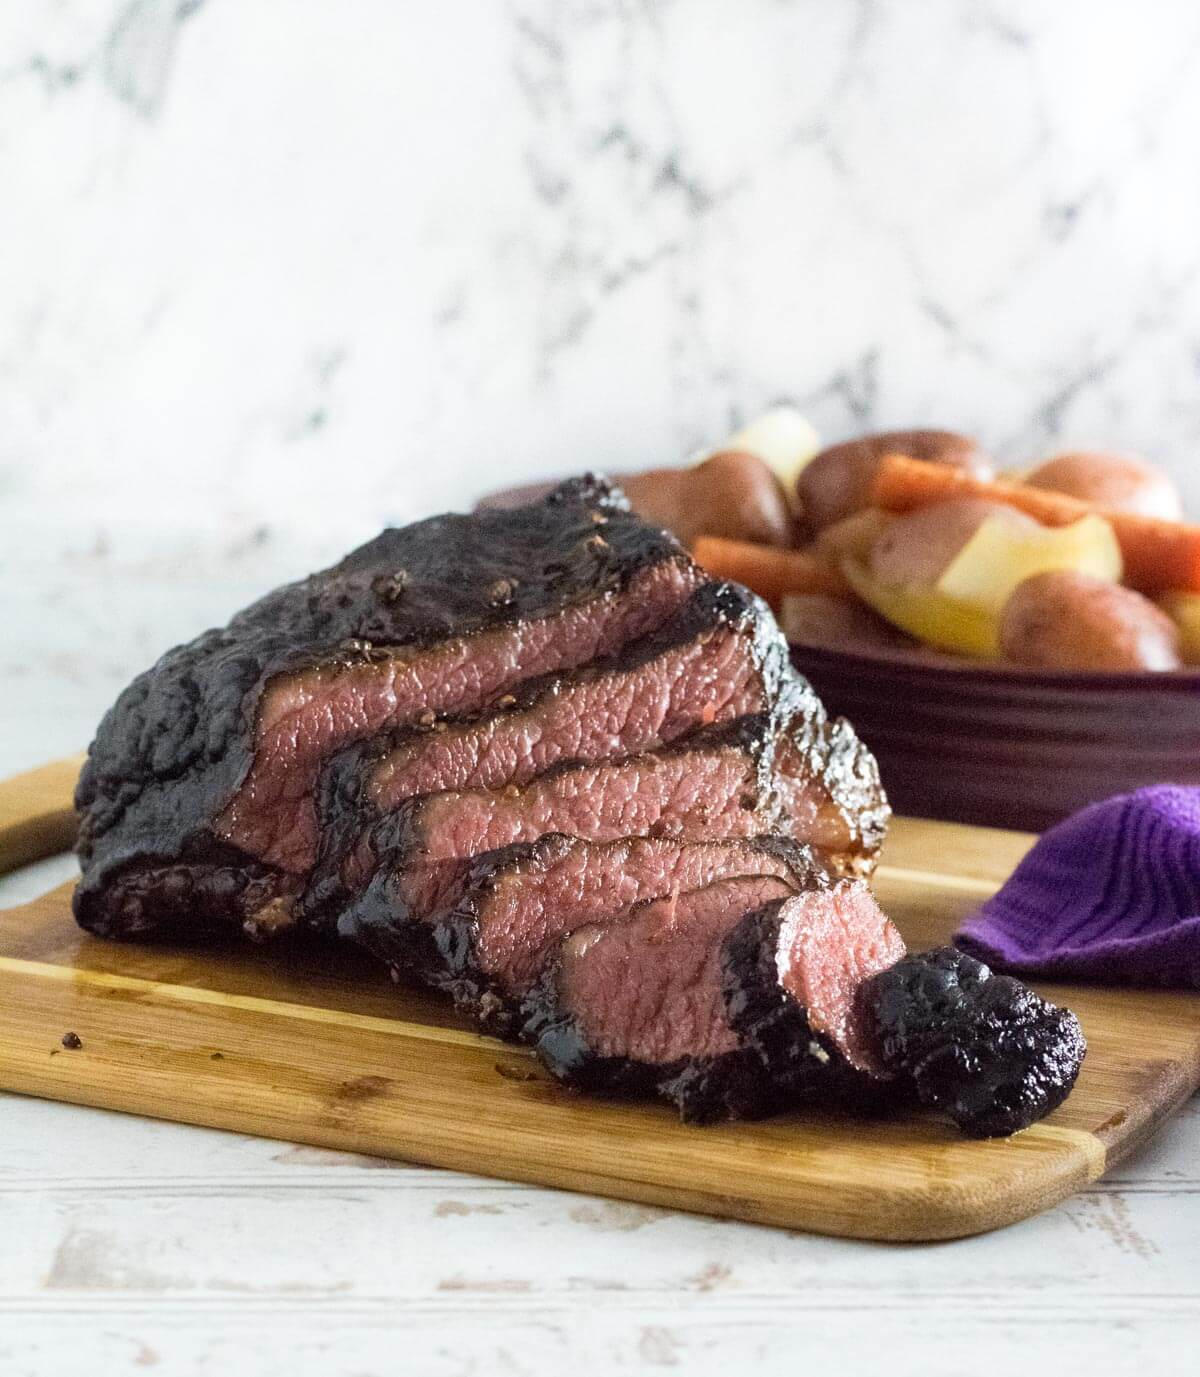 Tender smoked corned beef sliced on cutting board.